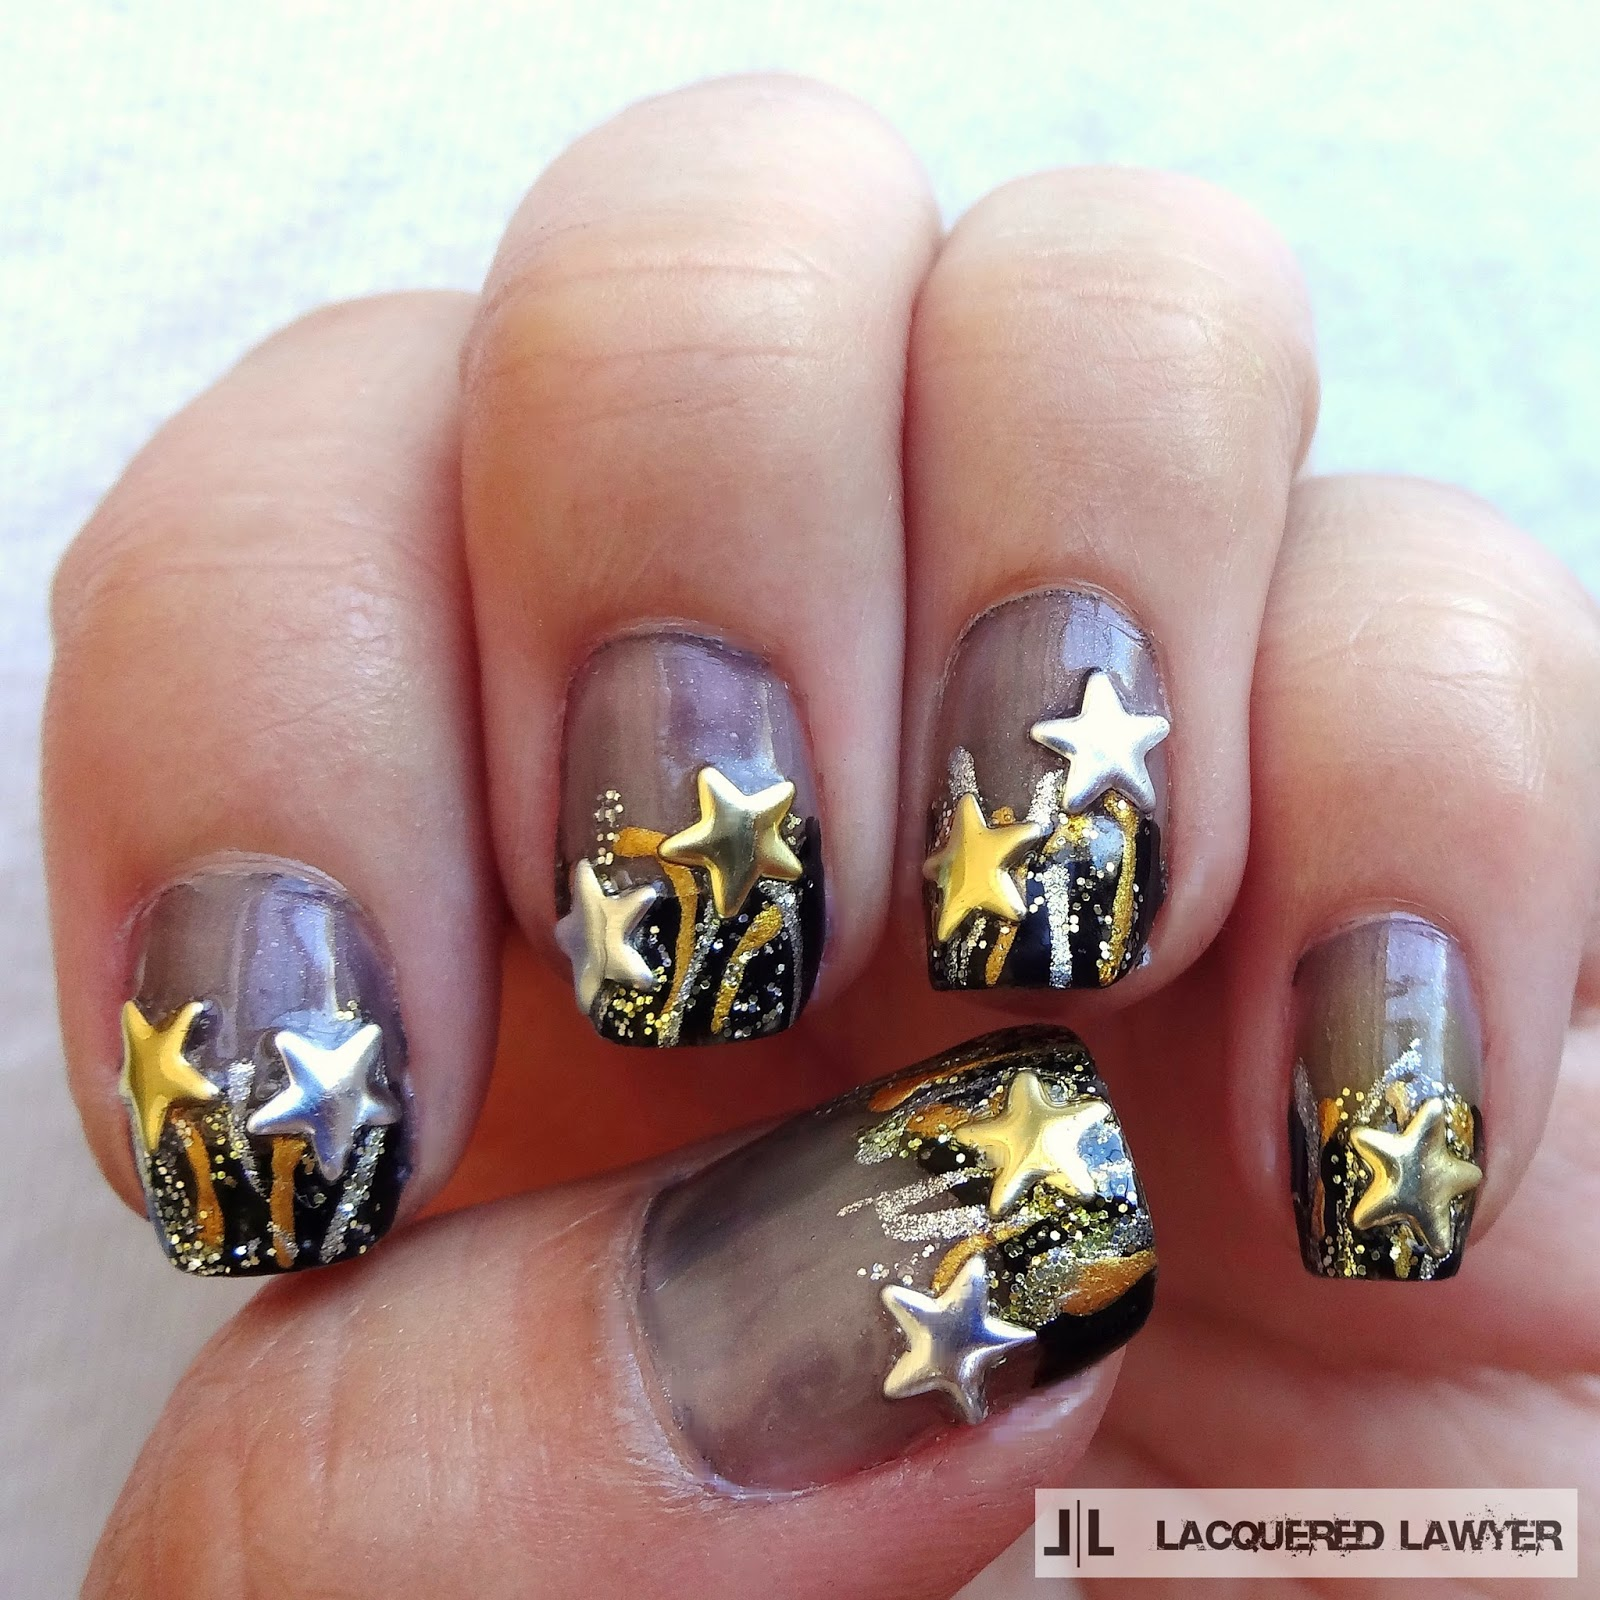 Lacquered Lawyer | Nail Art Blog: Starry Celebration